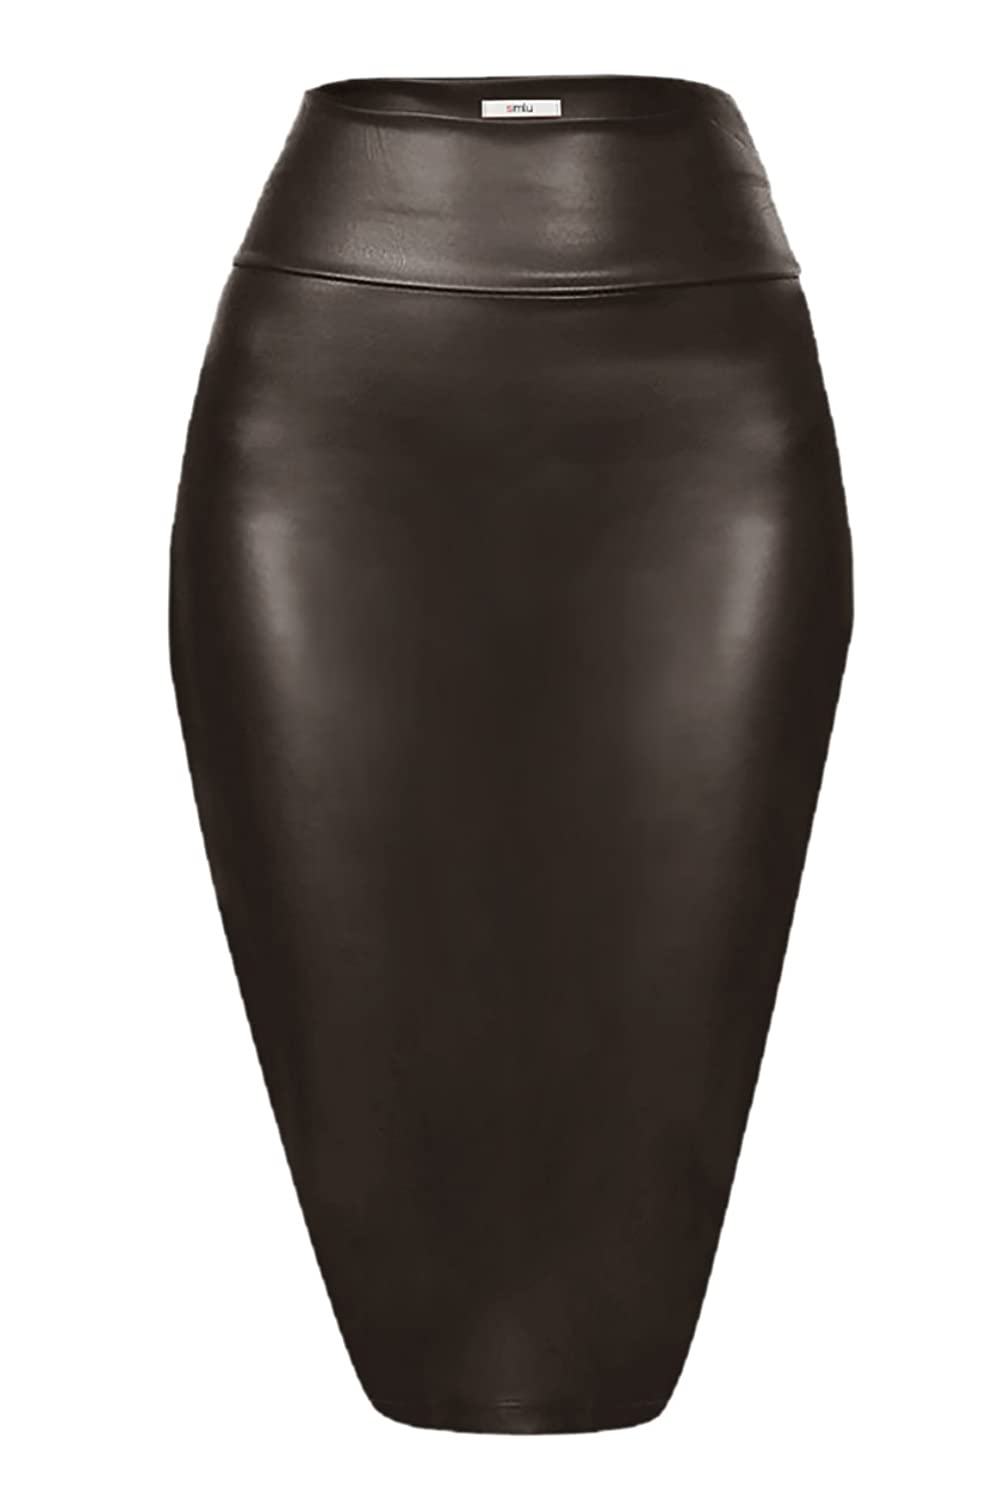 c7b9a914ec Made in USA COMFORT - These Knee Length Pencil Skirts for Women are  Composed of 90% Polyester, 10% Spandex. The stretchy fabric and wide waist  band of these ...